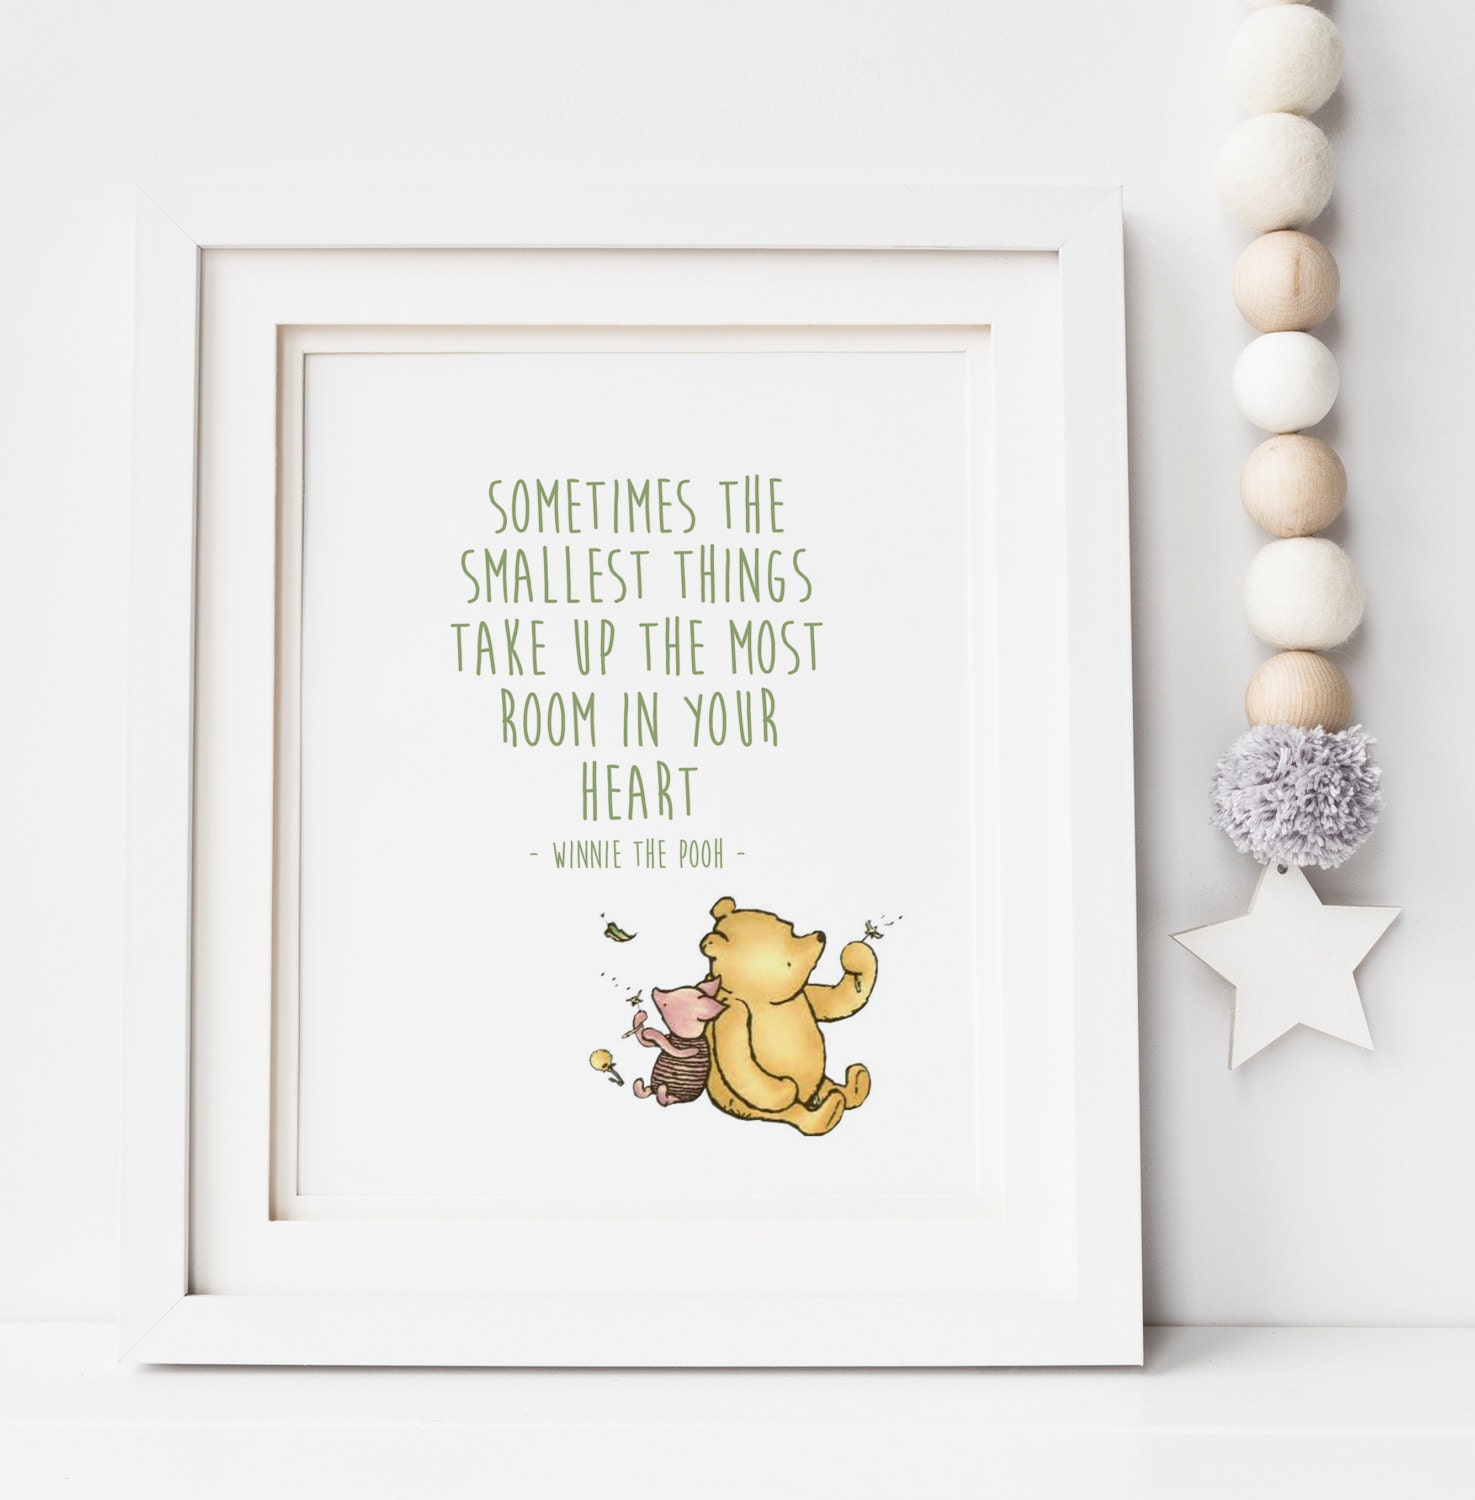 Winnie The Pooh Quotes Sometimes The Smallest Things: Sometimes The Smallest Things Take Up The Most Room Winnie